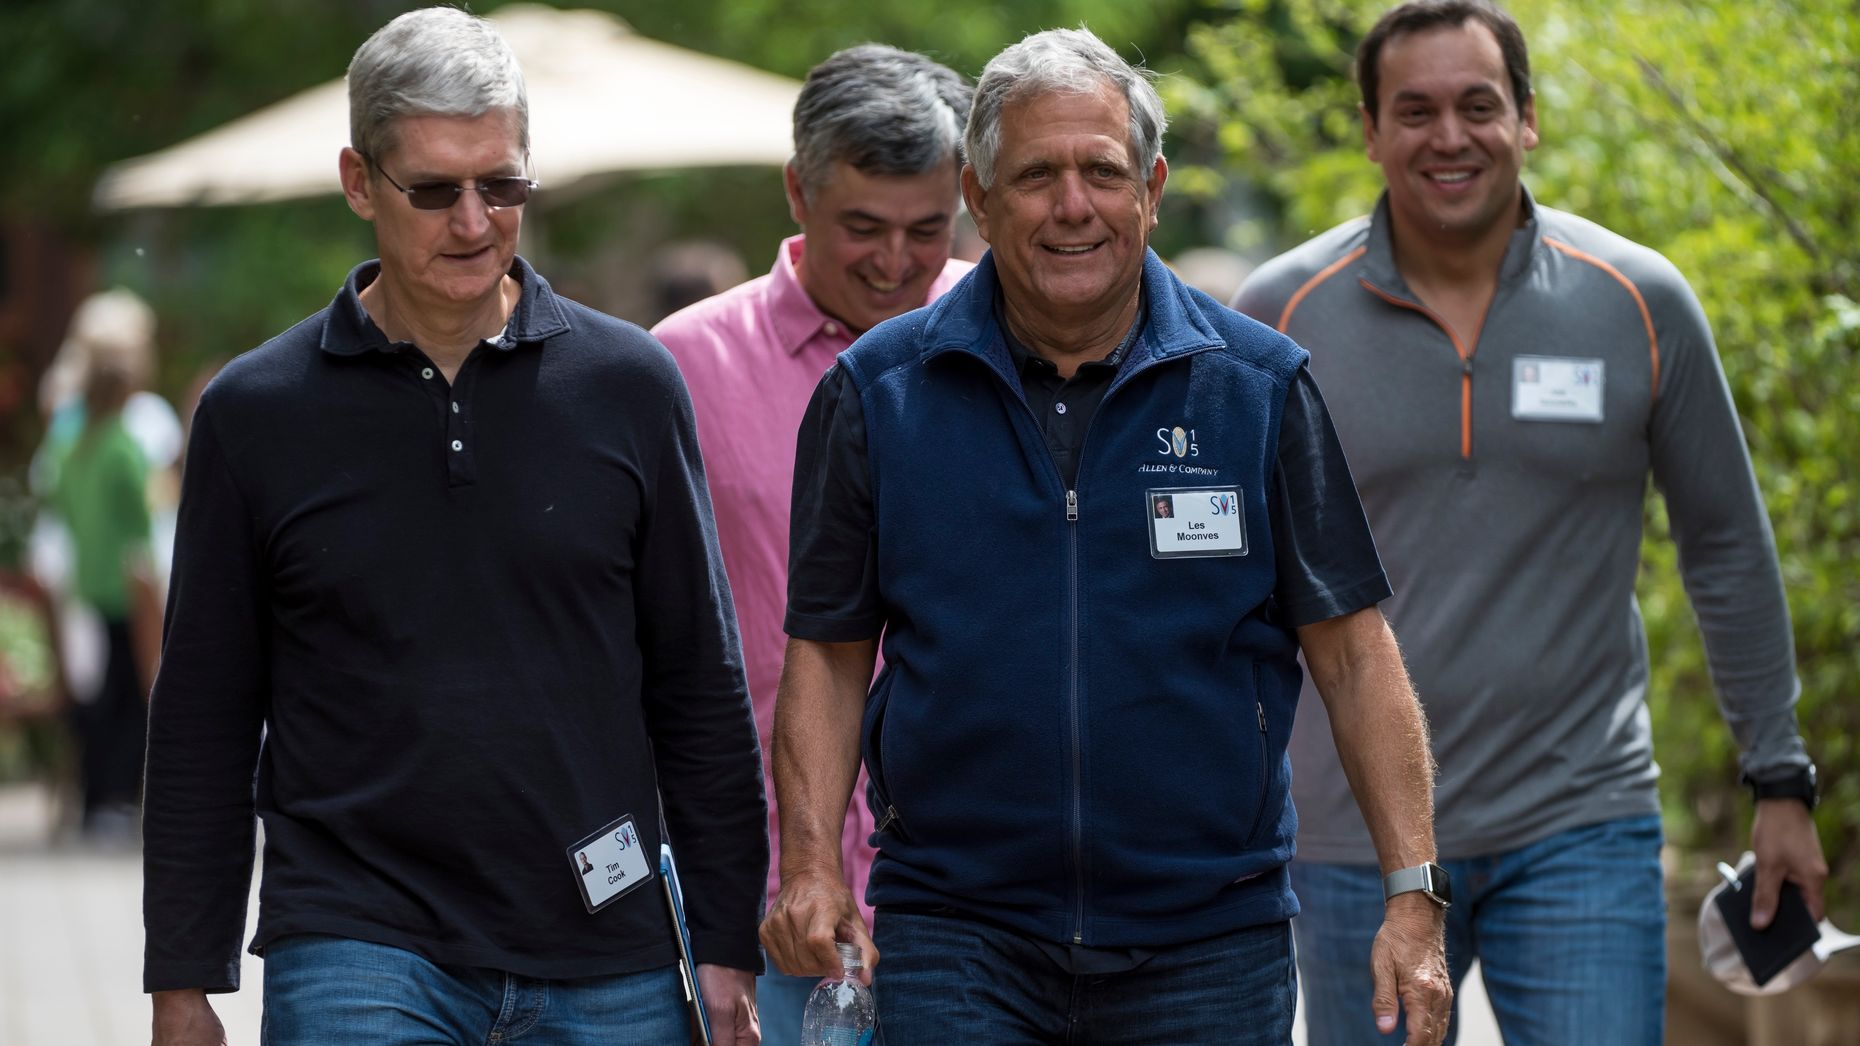 Tim Cook, left, Eddy Cue, Les Moonves and Joe Ianniello of CBS. Photo by Bloomberg.